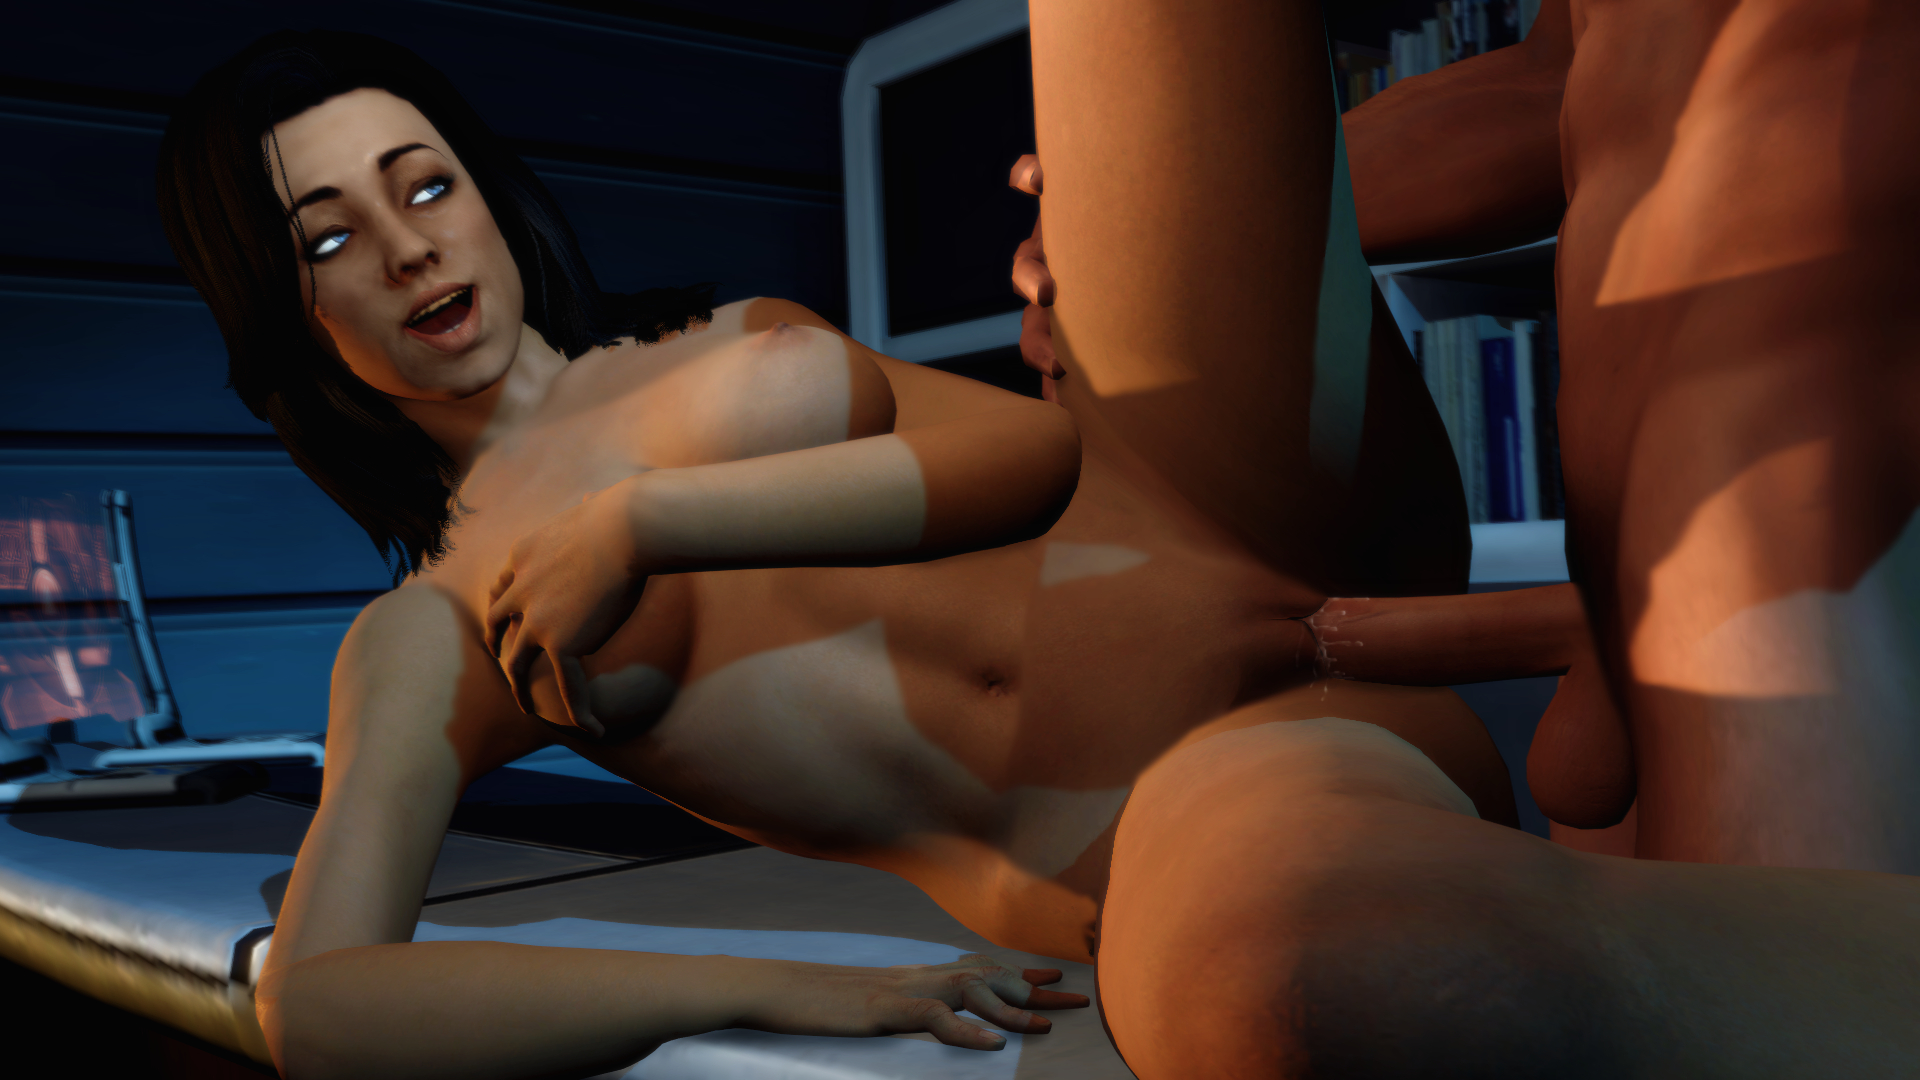 Mass effect 2 sex mod hentia images